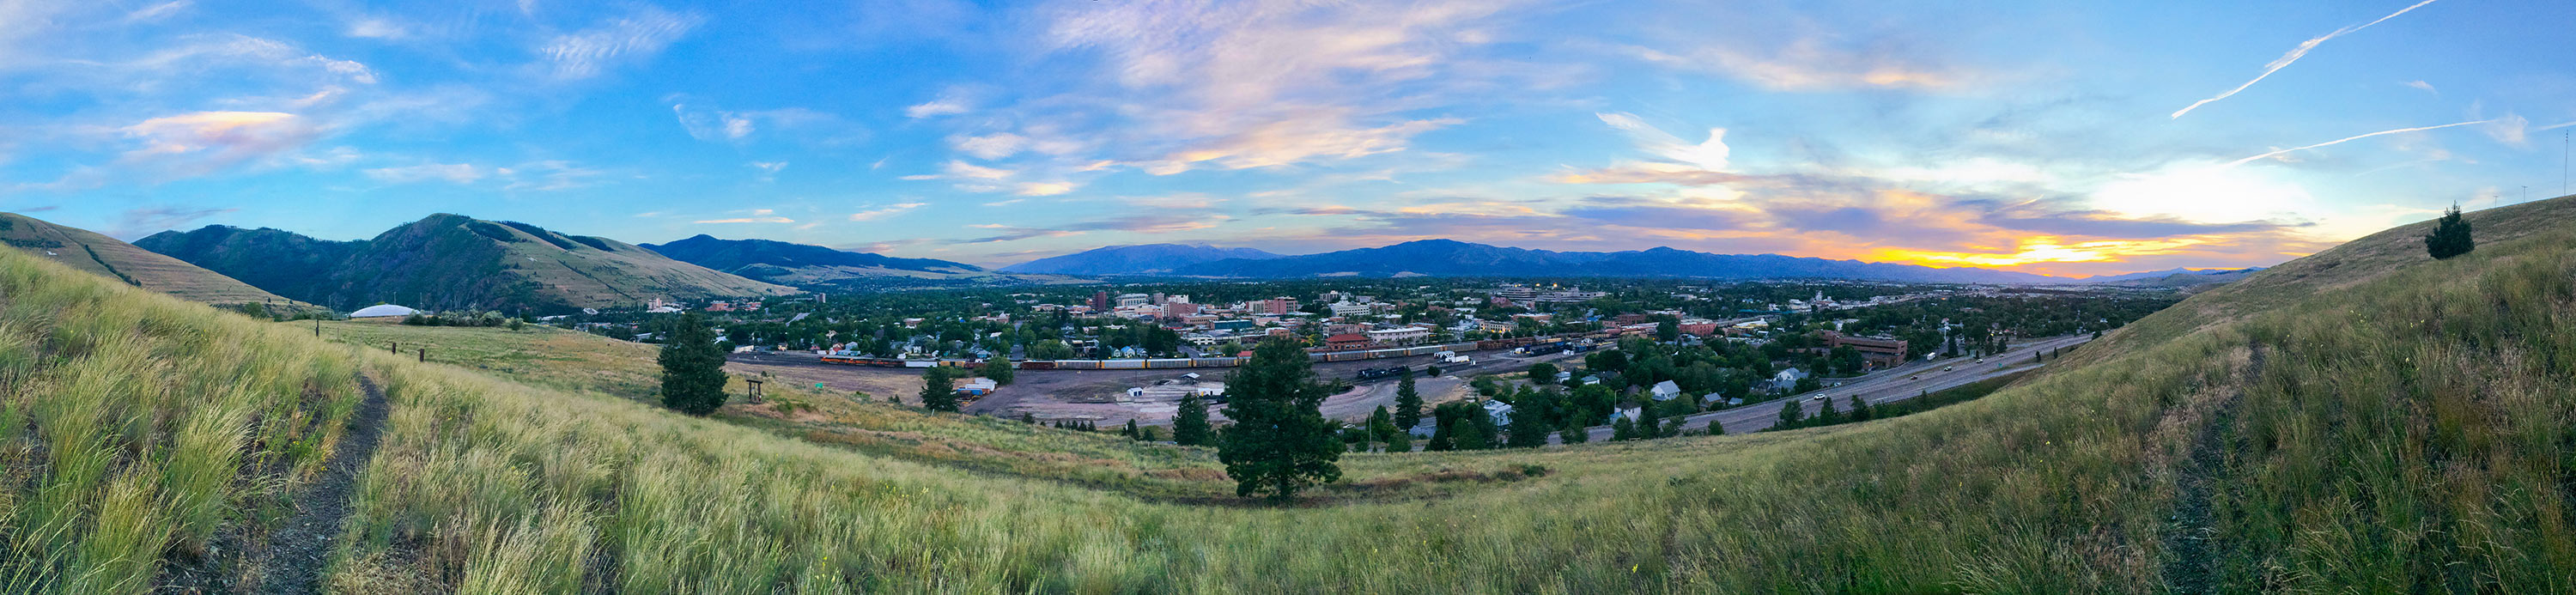 Summer sunset over Waterworks Hill in Missoula